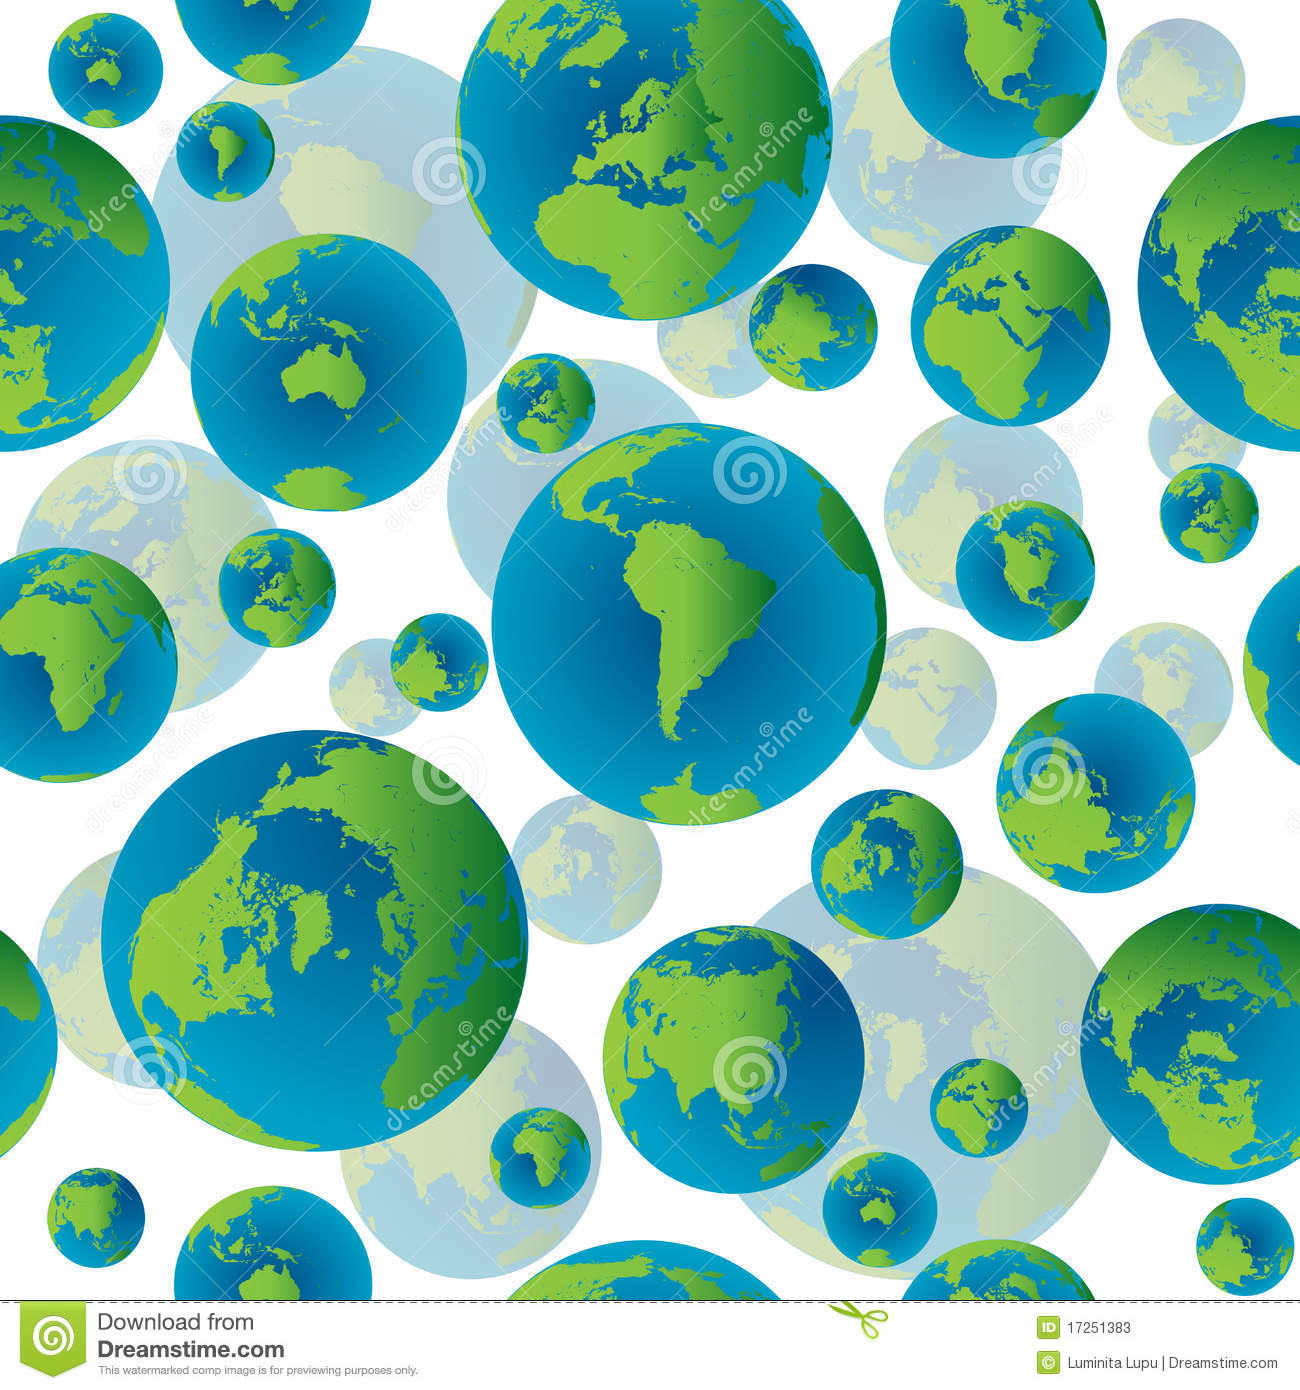 cartoon map of usa with Stock Photos Abstract Seamless Pattern Earth Globes Image17251383 on Trafalgar Square also Stock Photos Abstract Seamless Pattern Earth Globes Image17251383 likewise Japan Flag as well Training besides Map Of The East Coast Usa 787512.